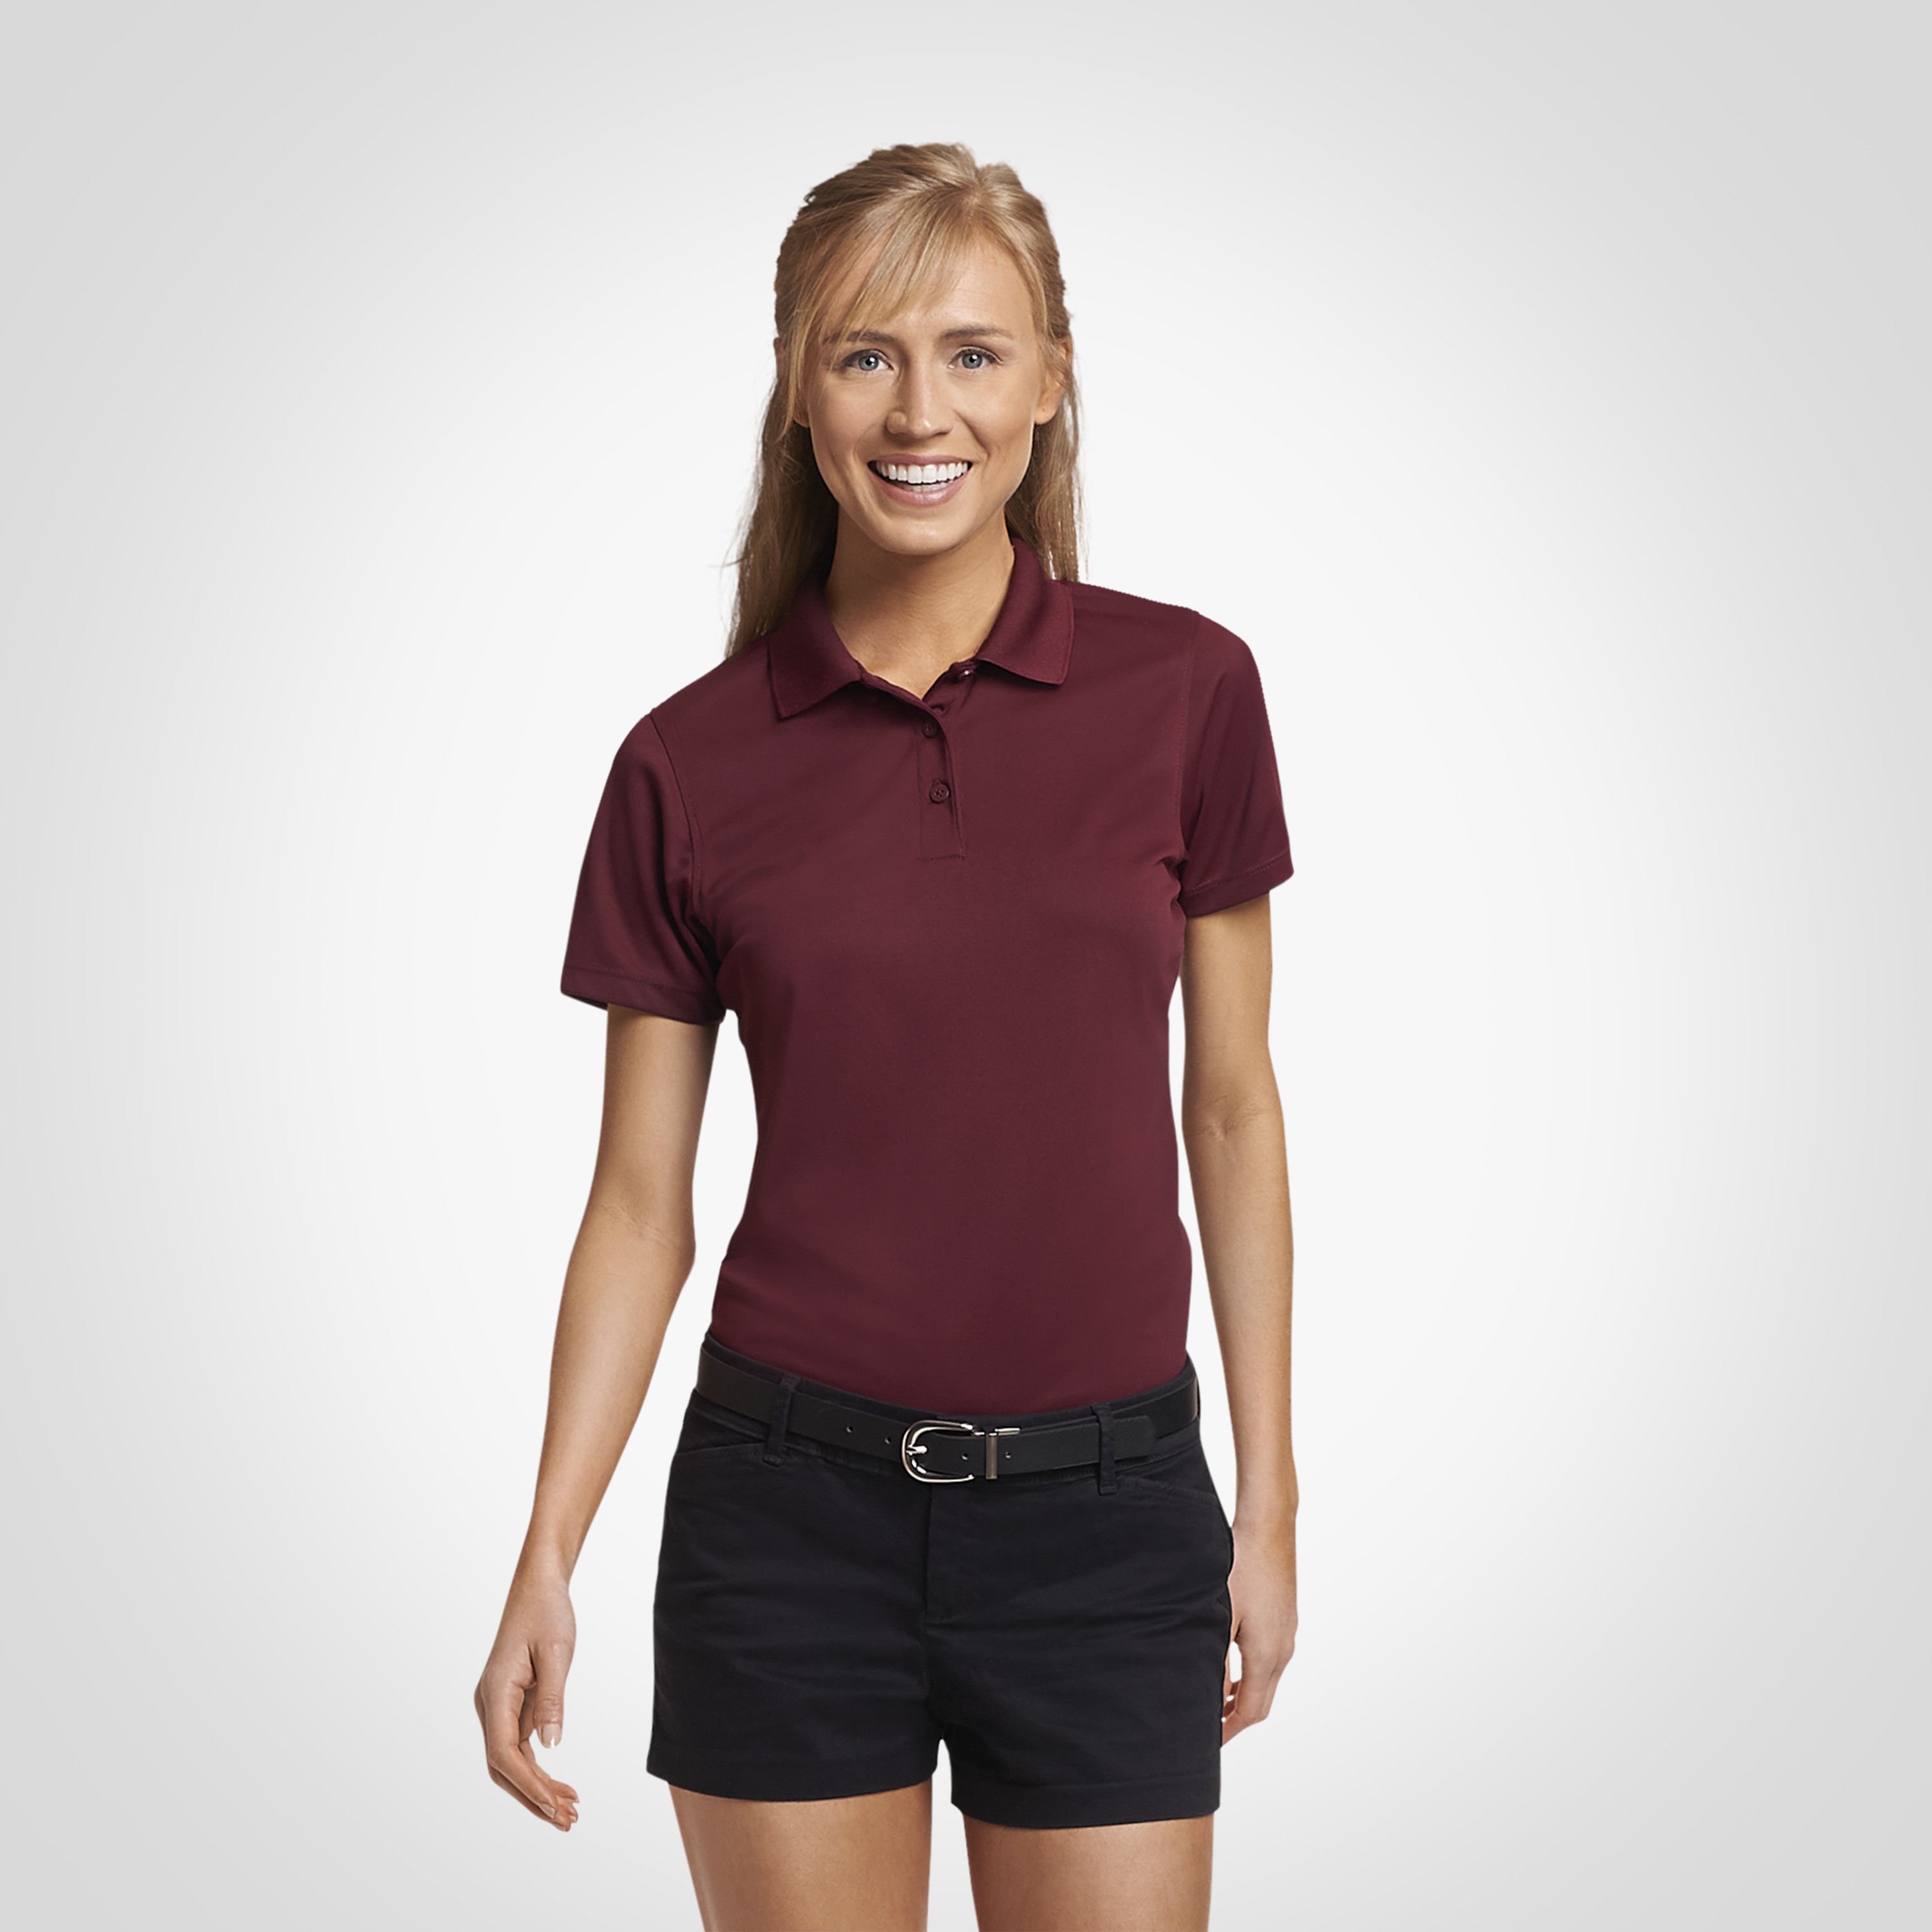 Women's Polos: Athletic Polo Shirts for Women | Russell Athletic